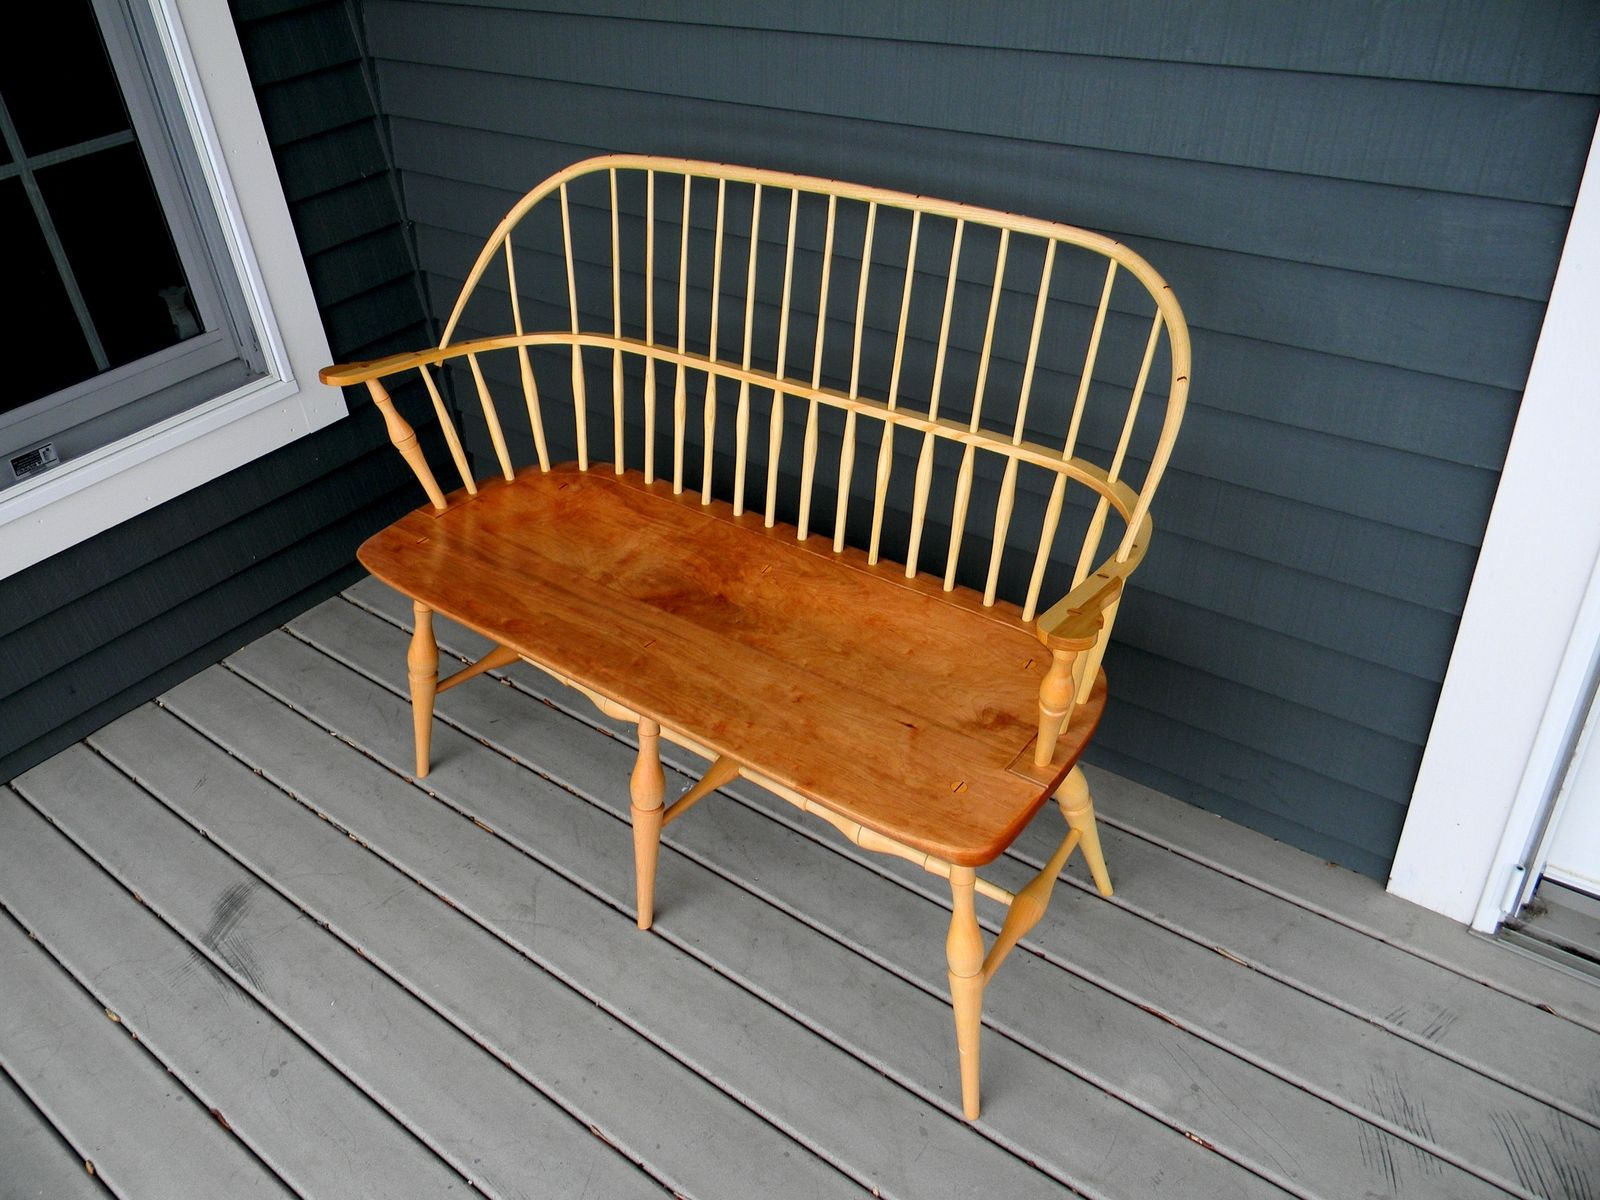 Handmade Cherry And White Ash Bench Settee By T Kelly